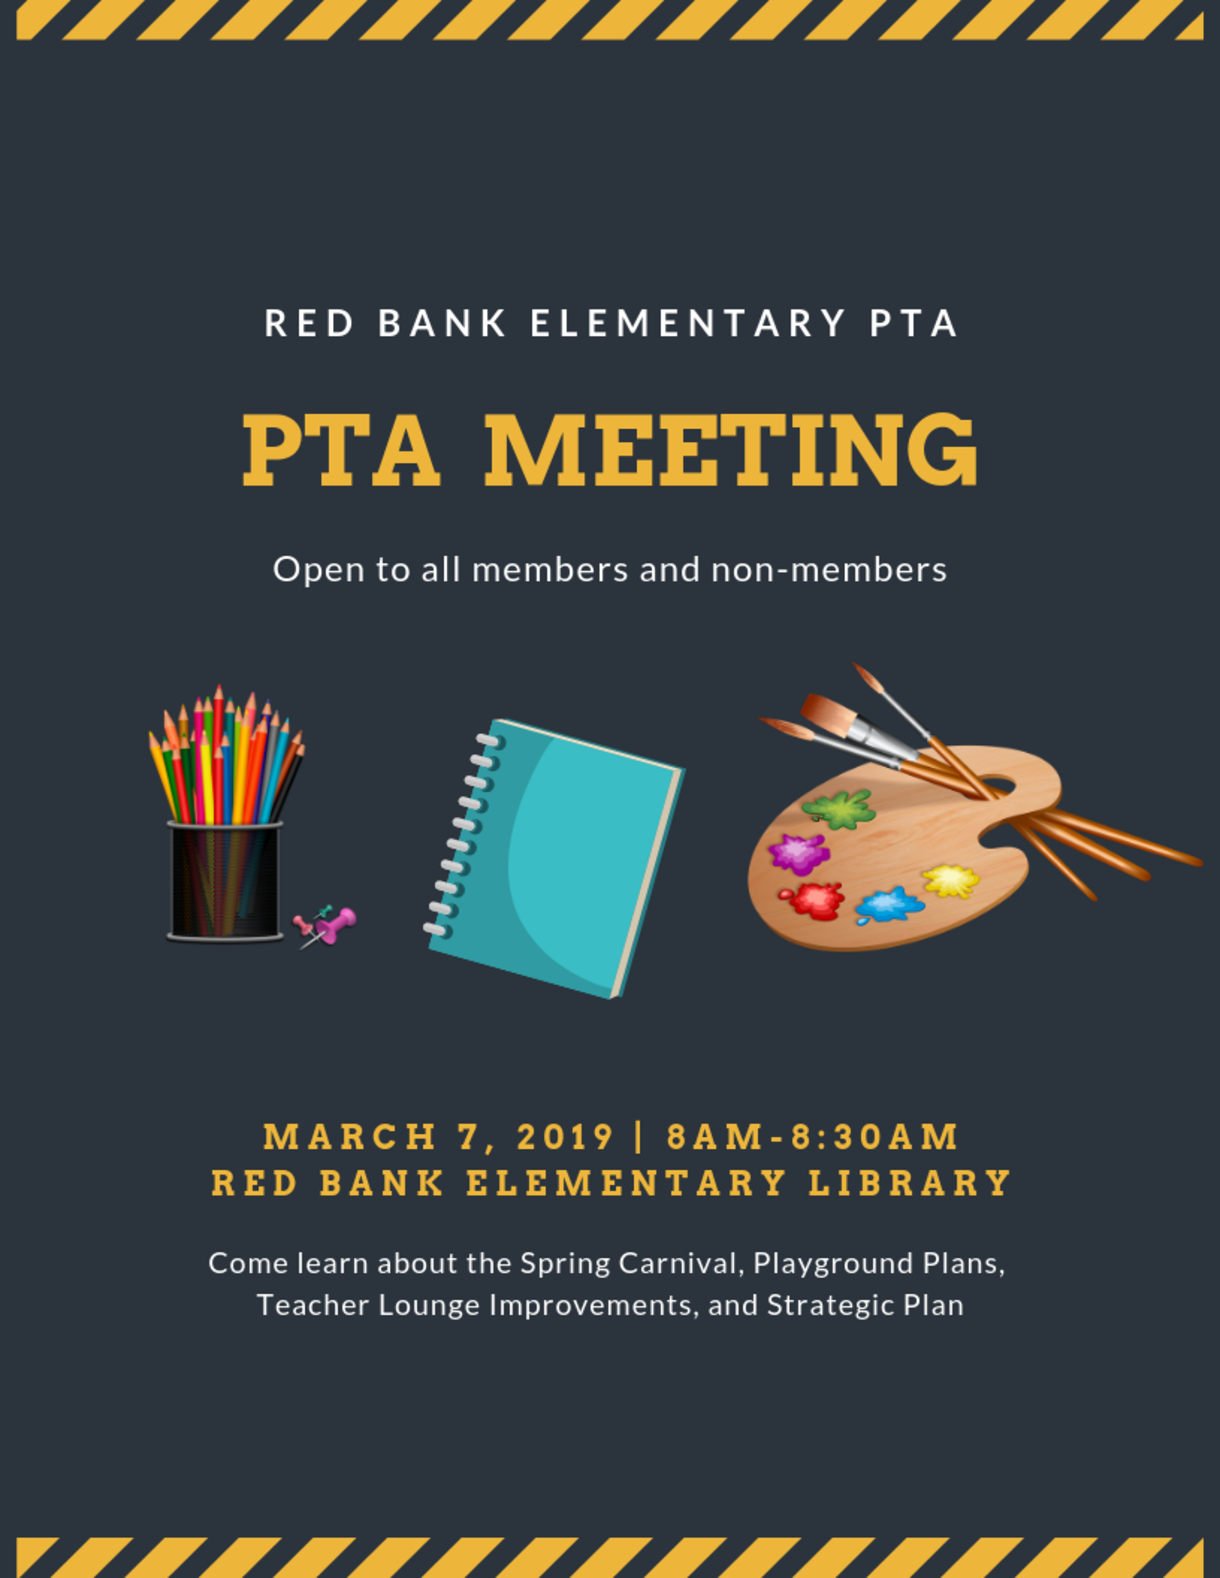 PTA Meeting March 7th at 8AM